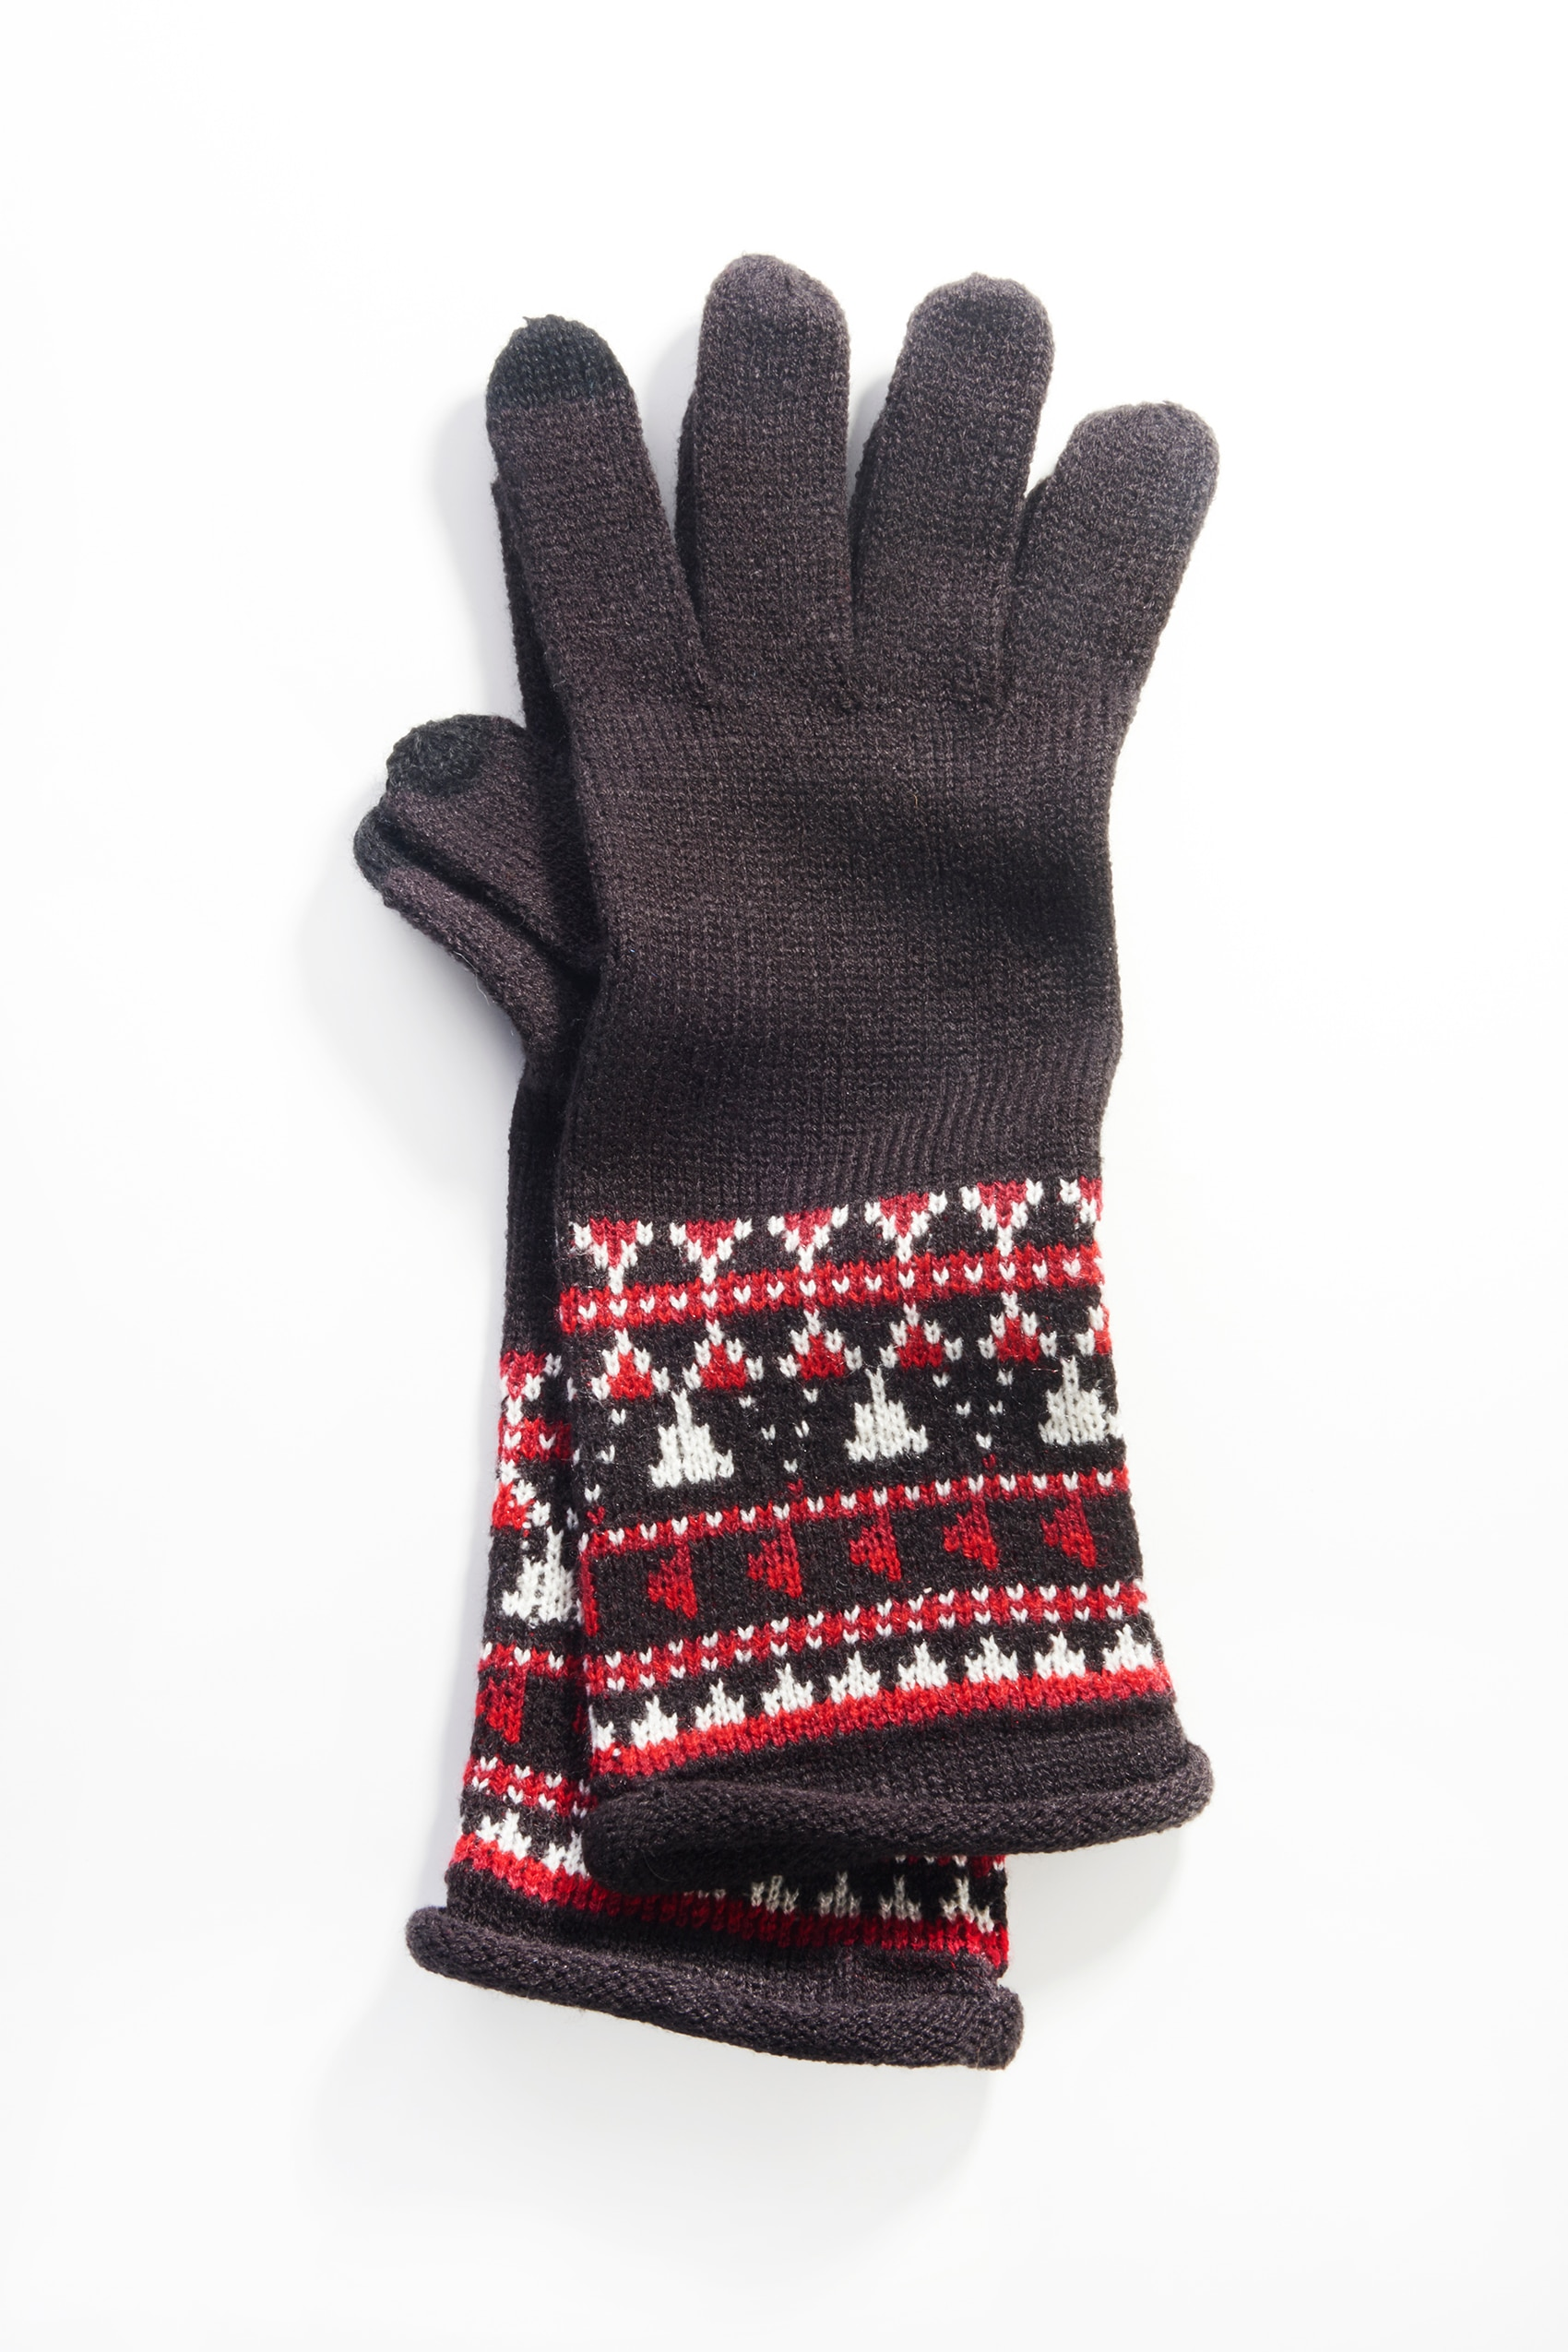 yarn-dyed Fair Isle smart gloves